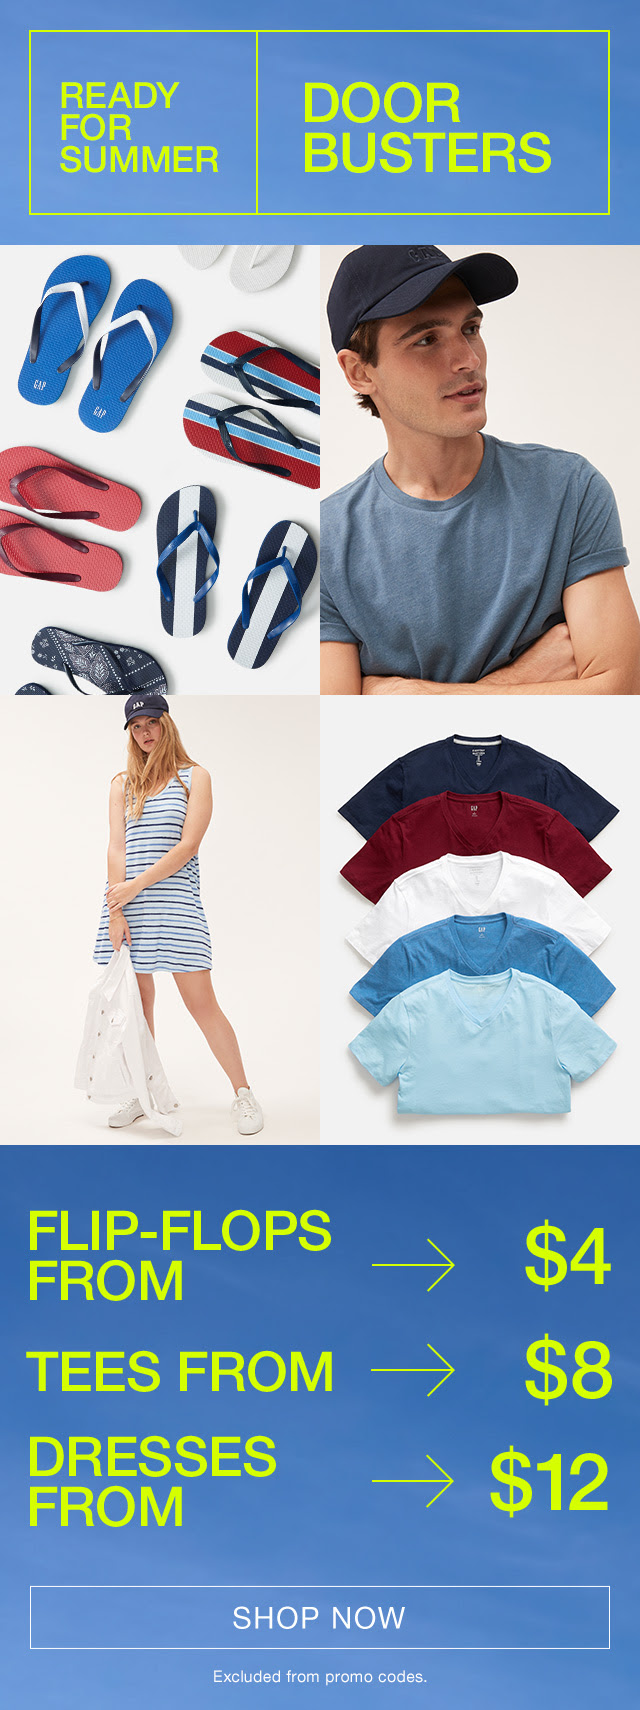 GAP: Memorial Day Sale 50-70% off on everything